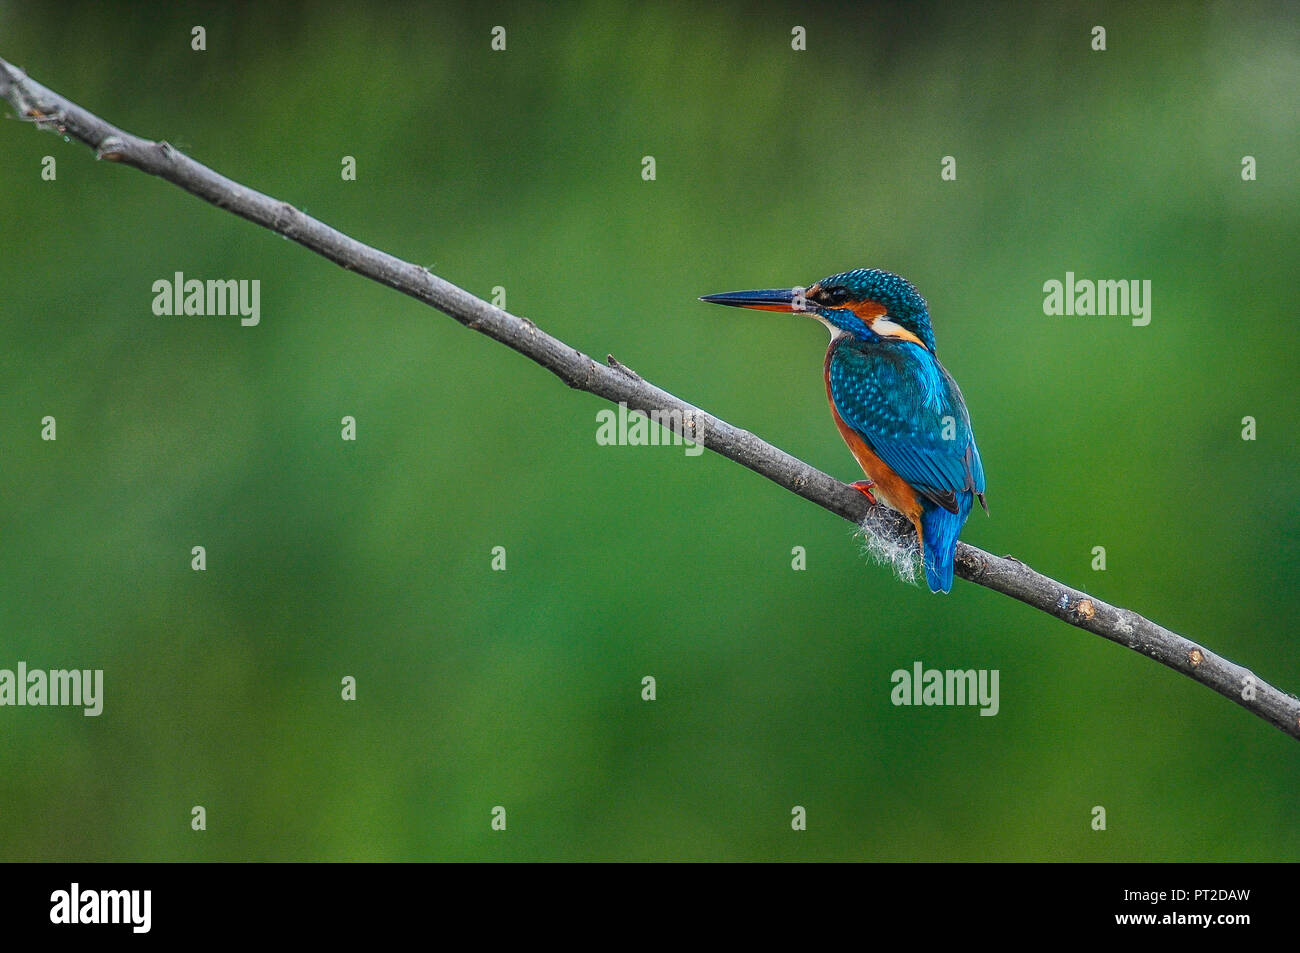 Common kingfisher on a twig - Stock Image